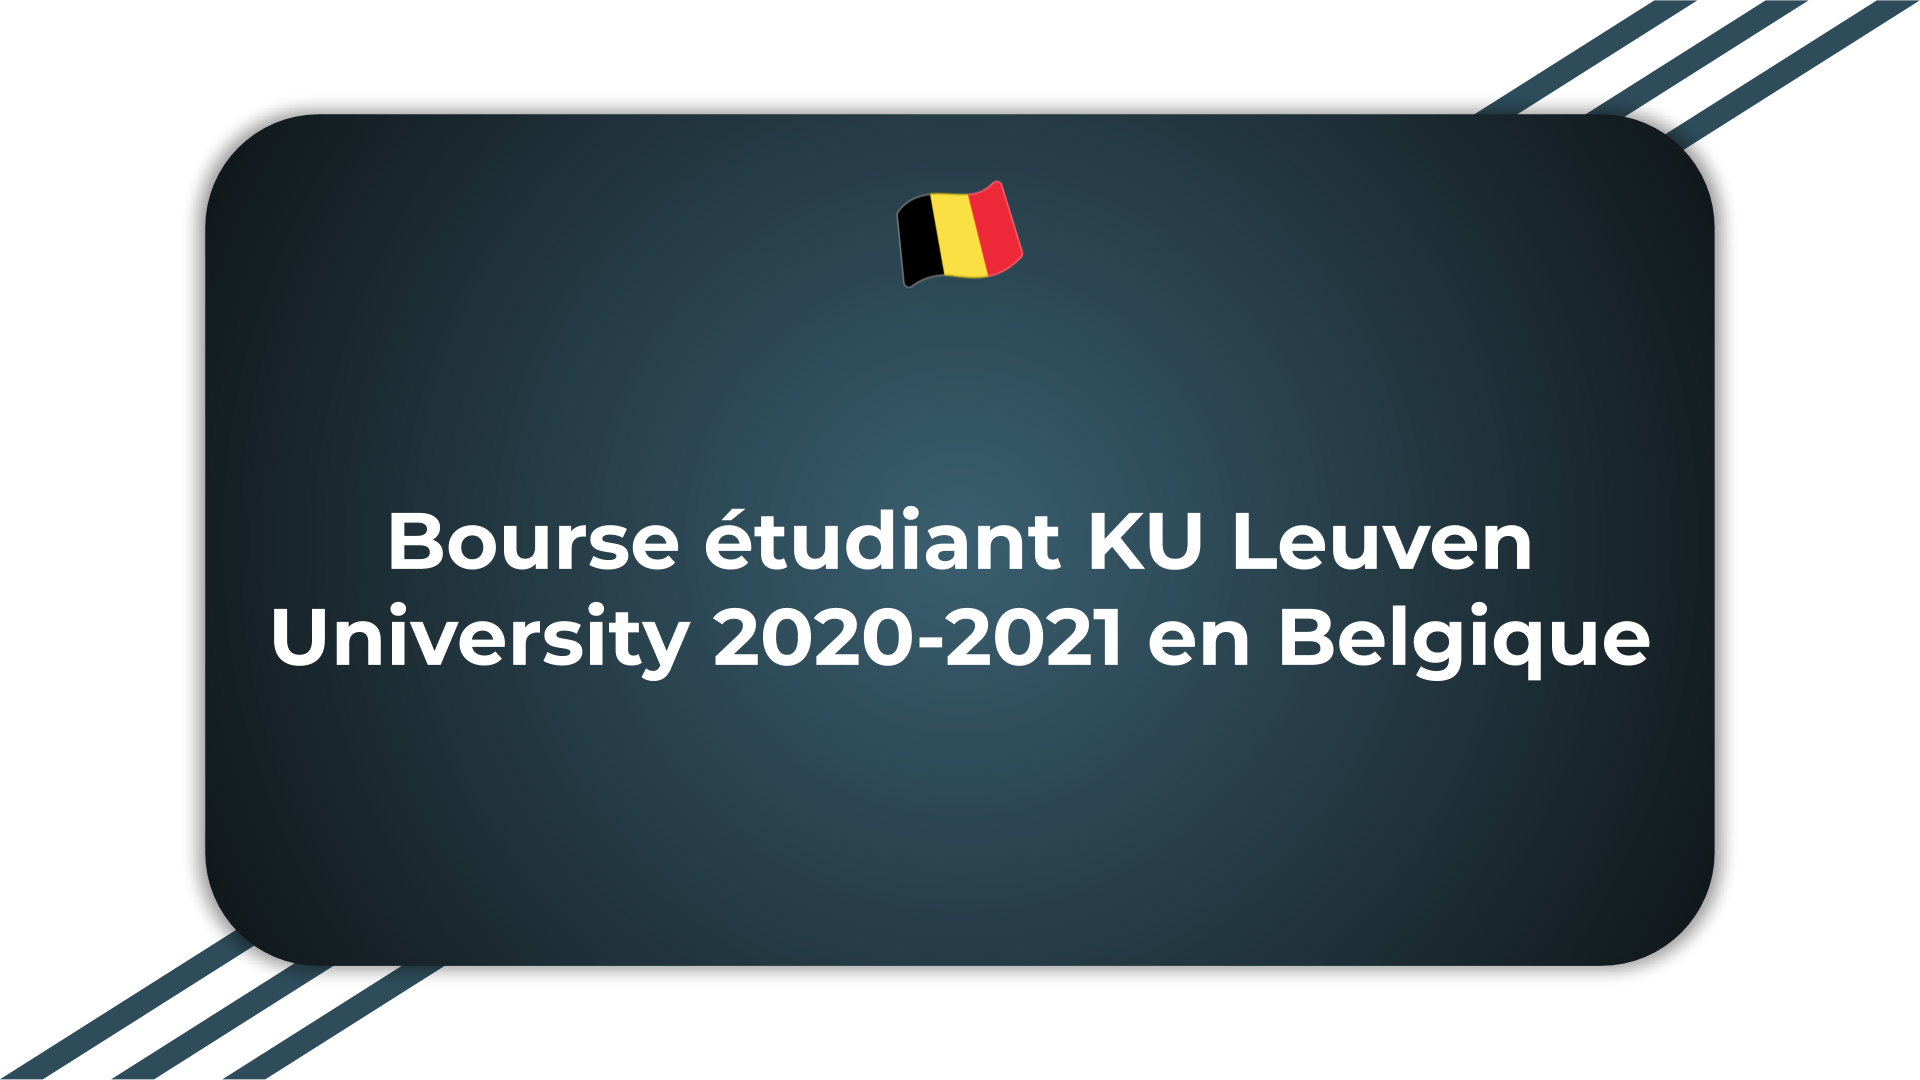 Bourse étudiant KU Leuven University